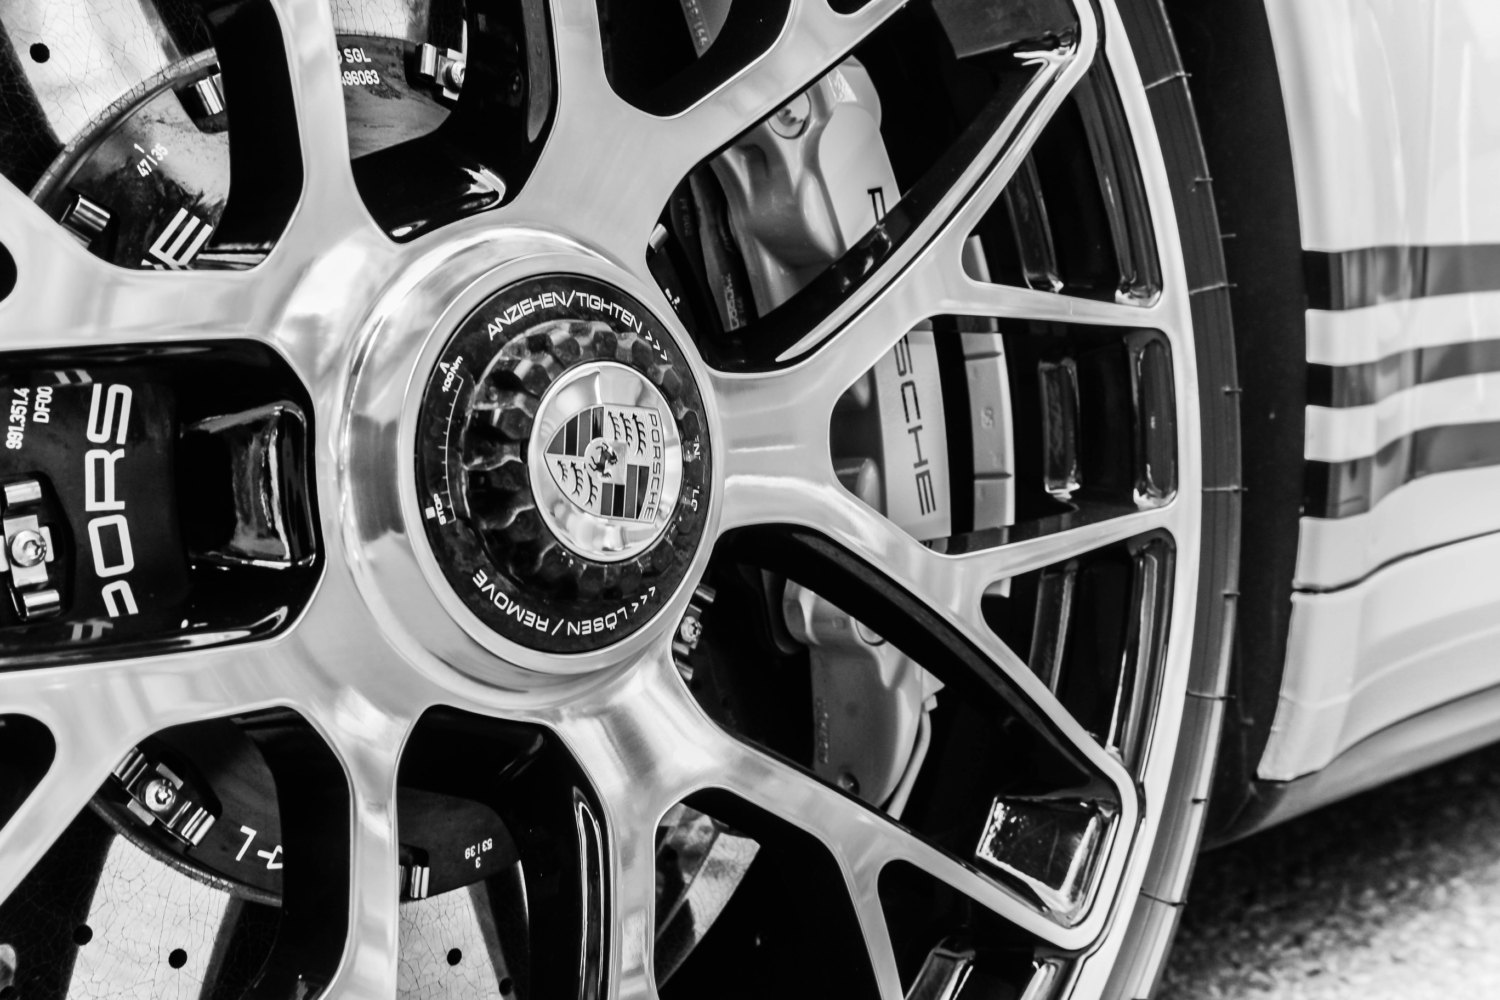 Photography Porsche 911 Wheel Fine Art Photography Black And White Wall Art Home Decor Car Photography Vintage Auto Gift Print Sold By D Casey Photography On Storenvy